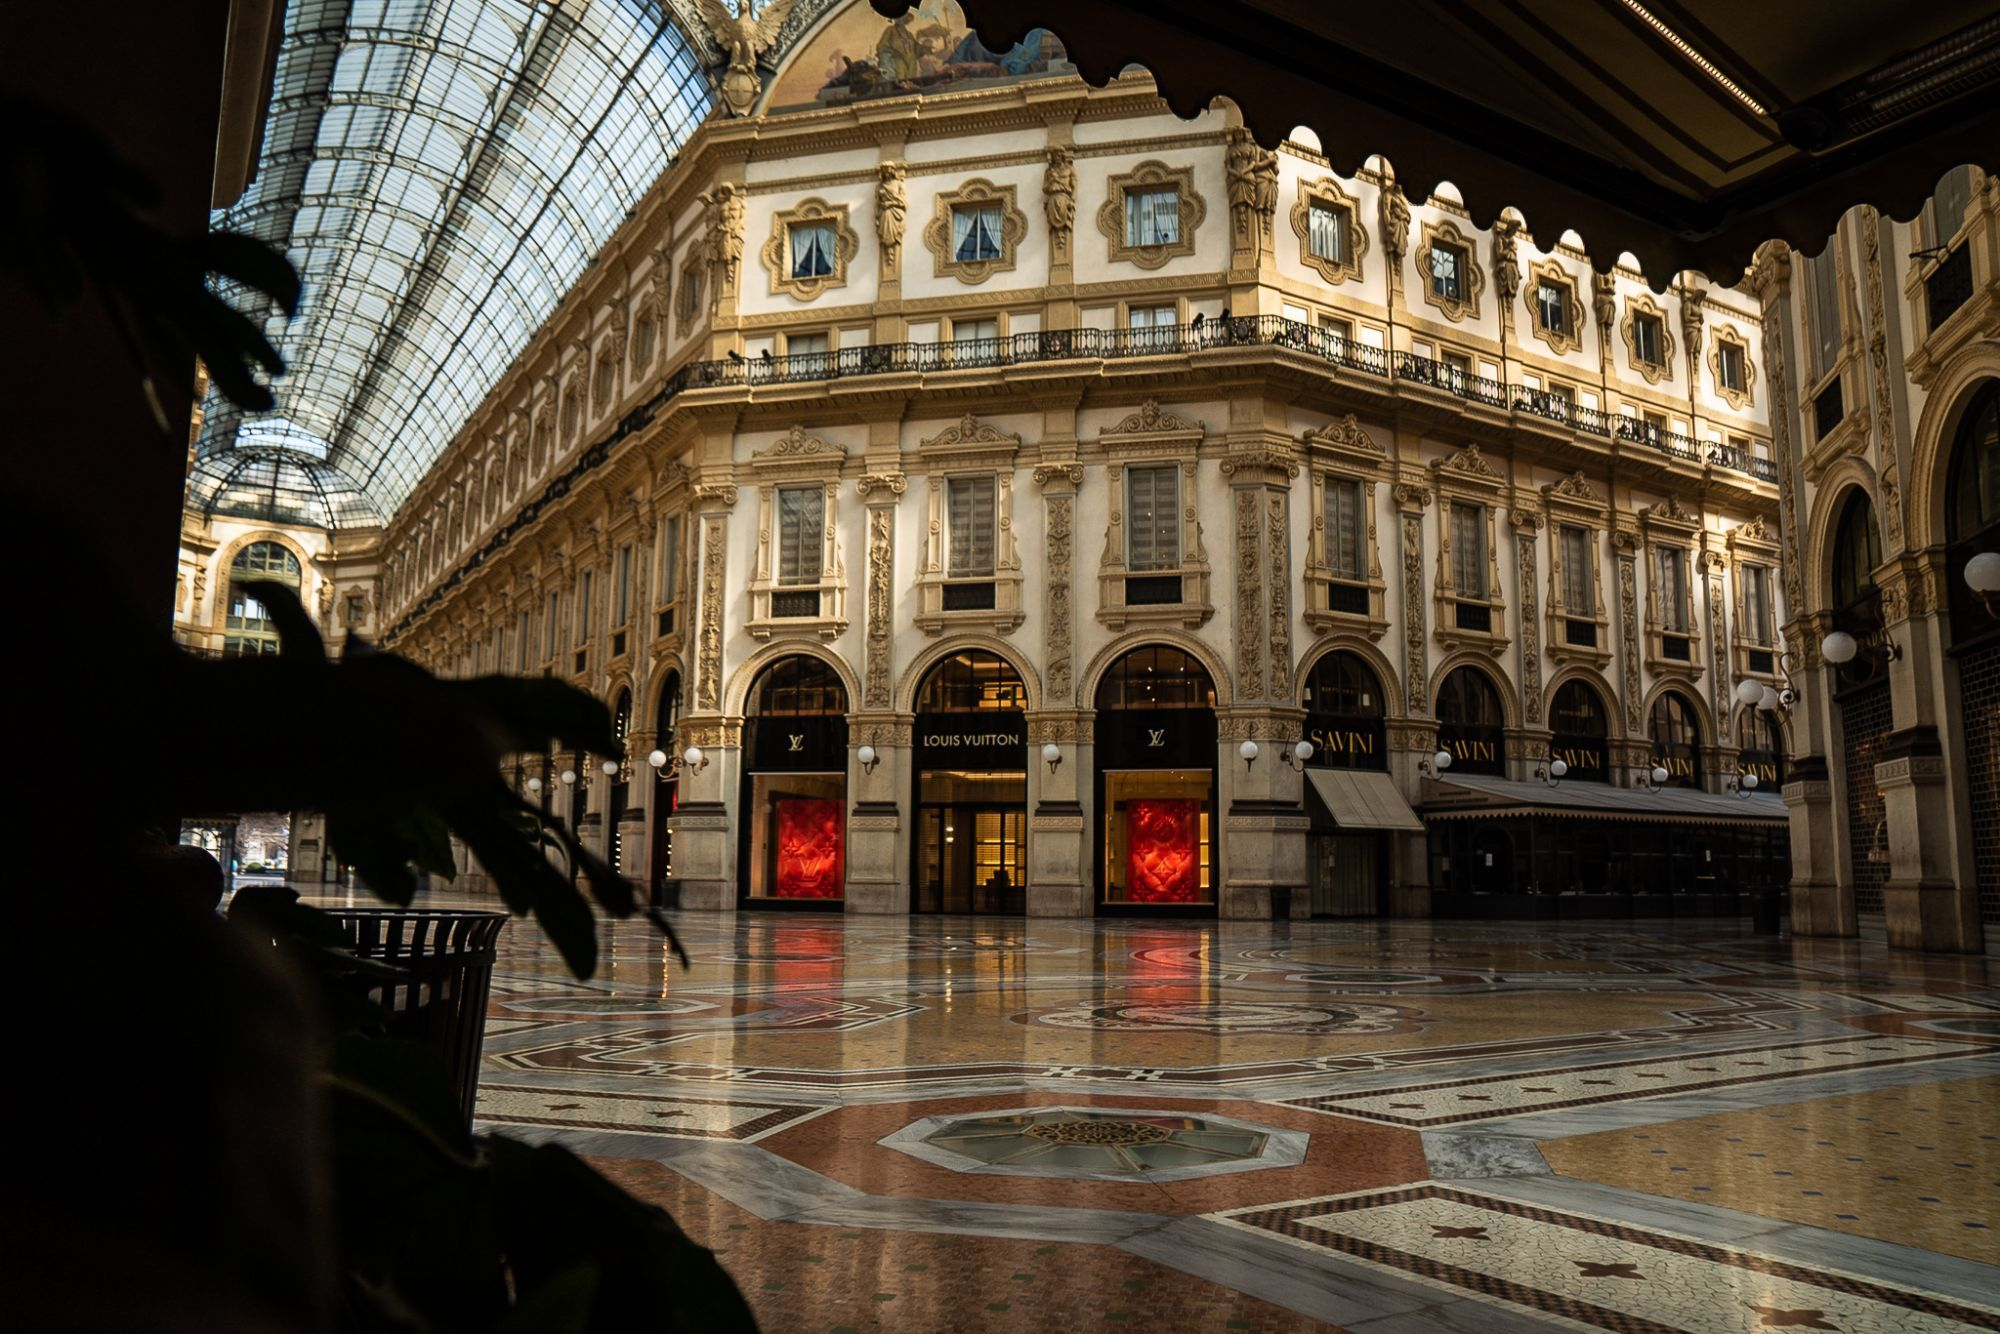 25% of Stores In Milan Are At Risk Of Closure